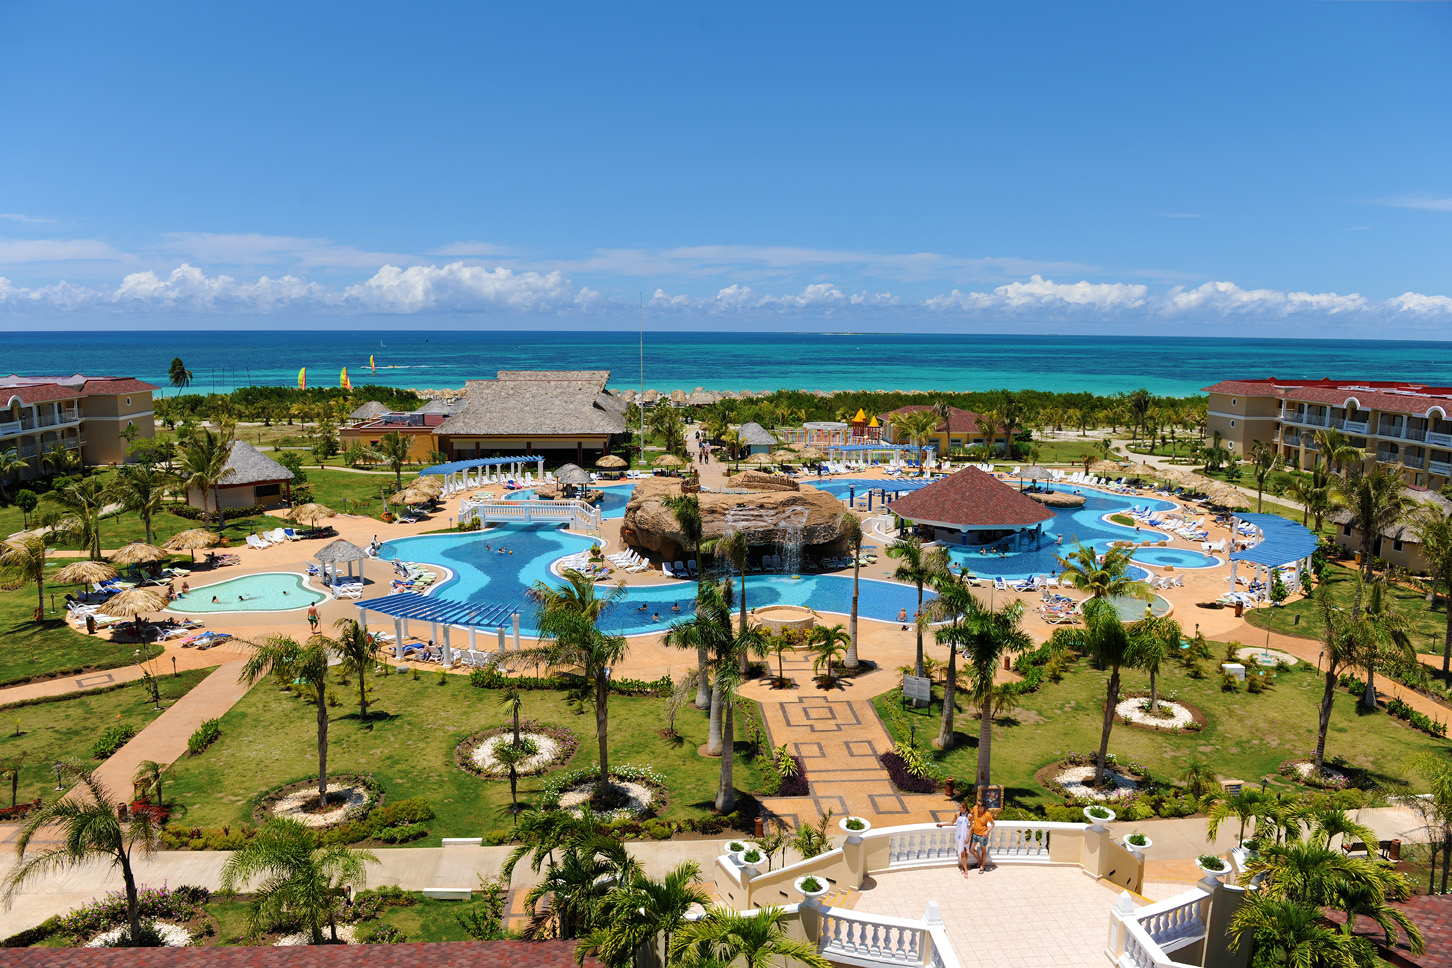 The Iberostar Laguna Azul is one of the best Cuba resorts for kids